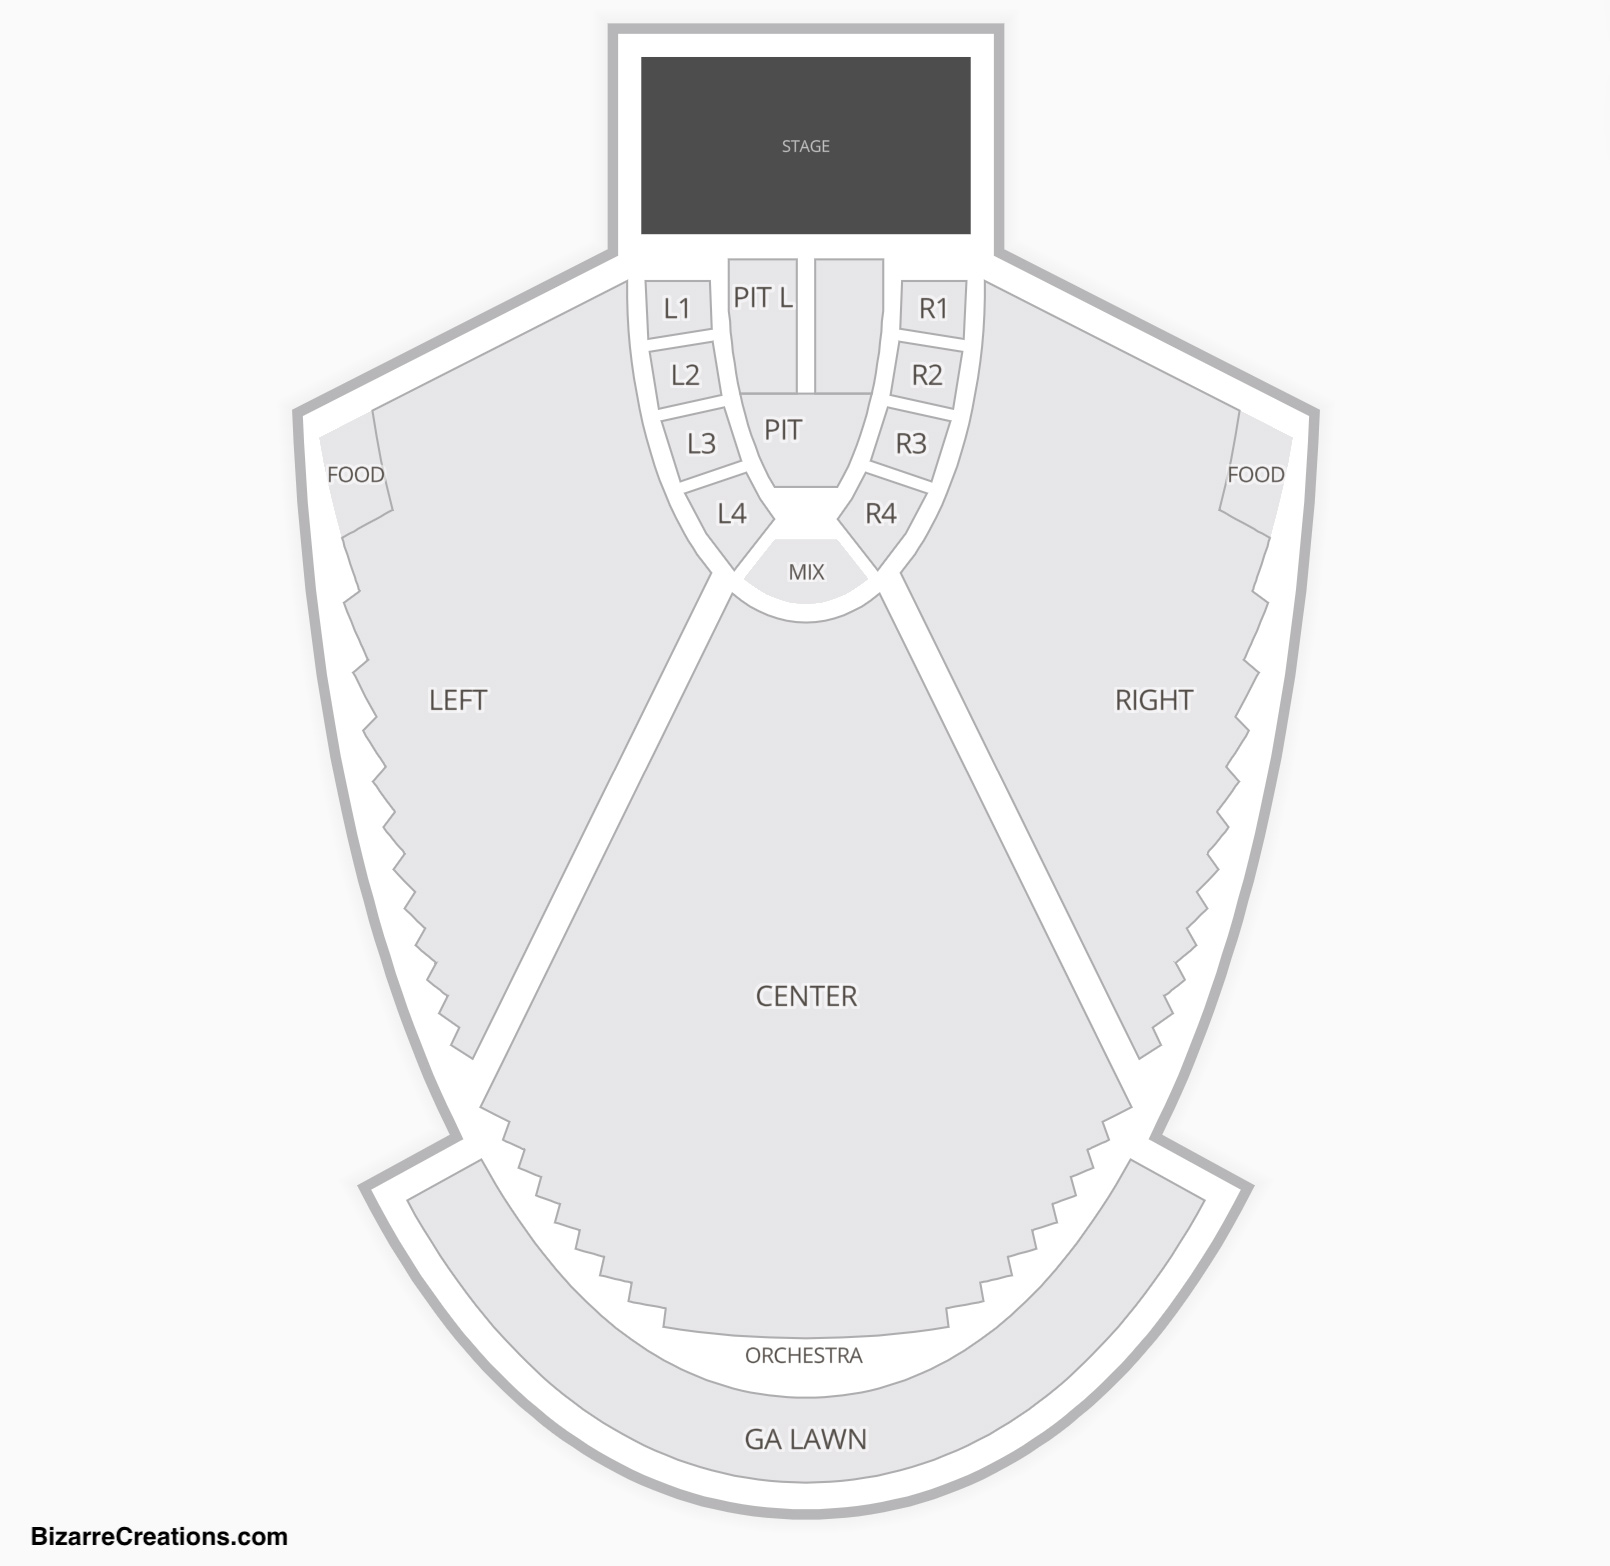 Chastain Park Amphitheatre Seating Chart Concert